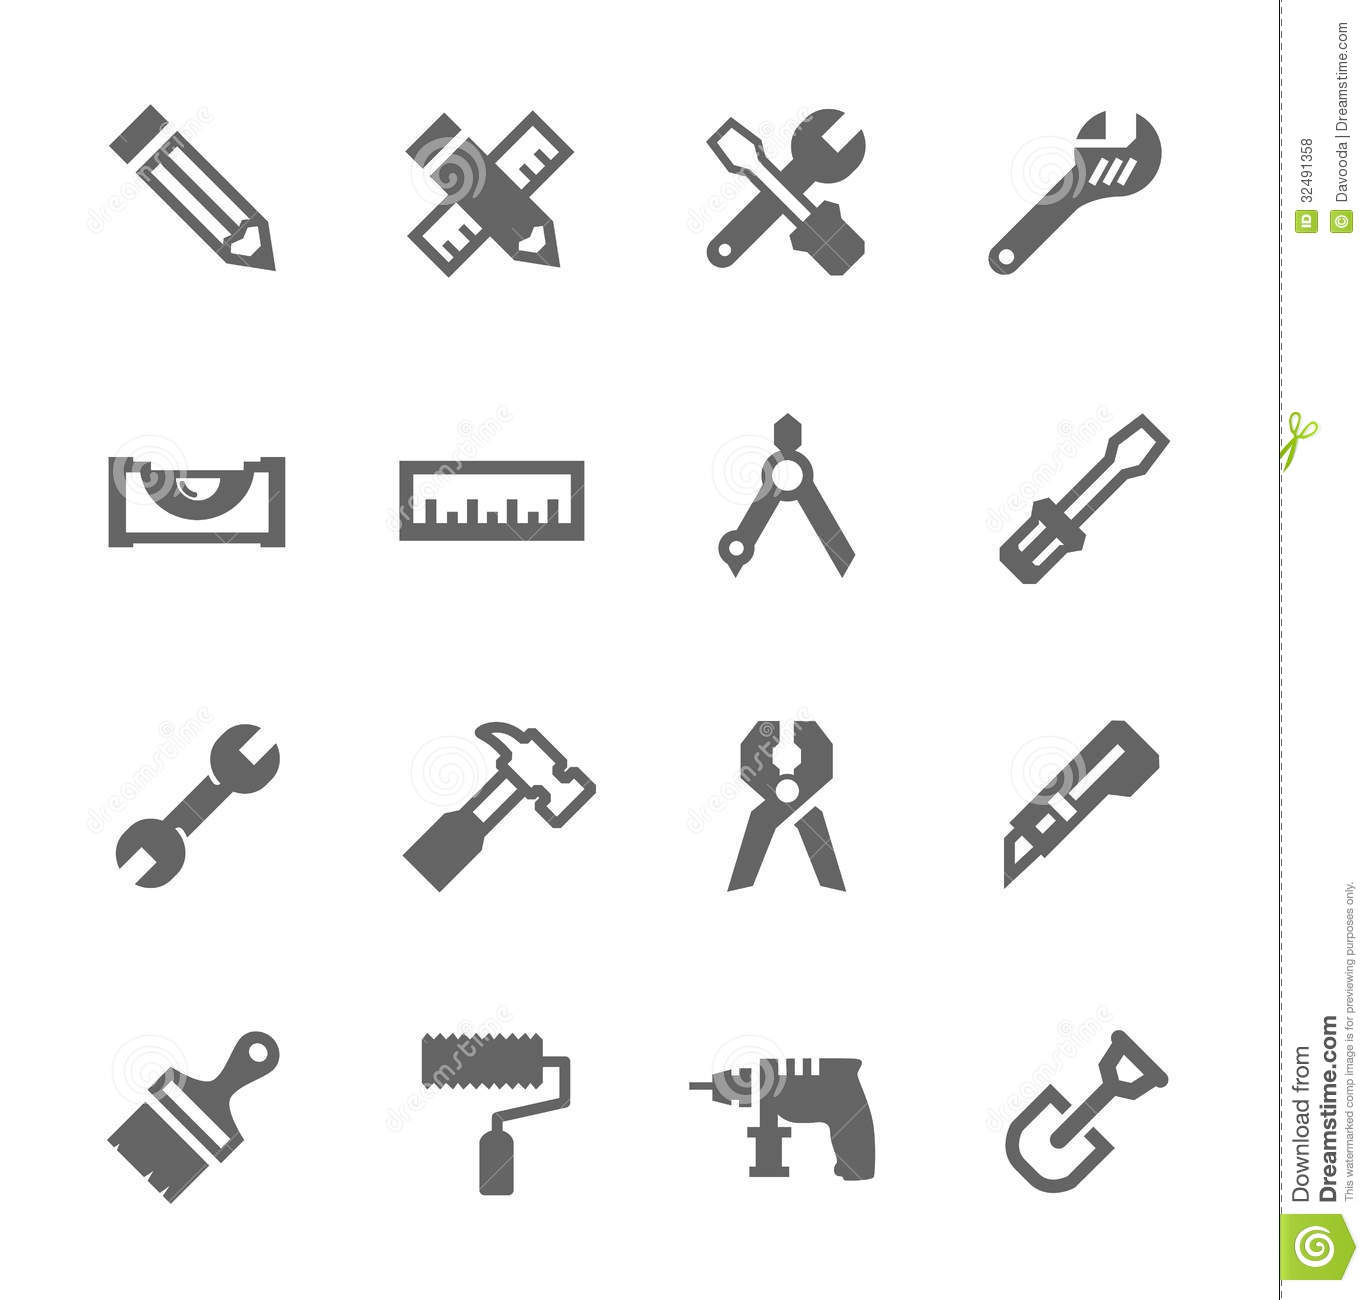 furthermore Desenhos De Ferramentas Para Colorir as well 206410247 as well Y Coloring Page besides Car frame suspension wheel icon. on construction tools